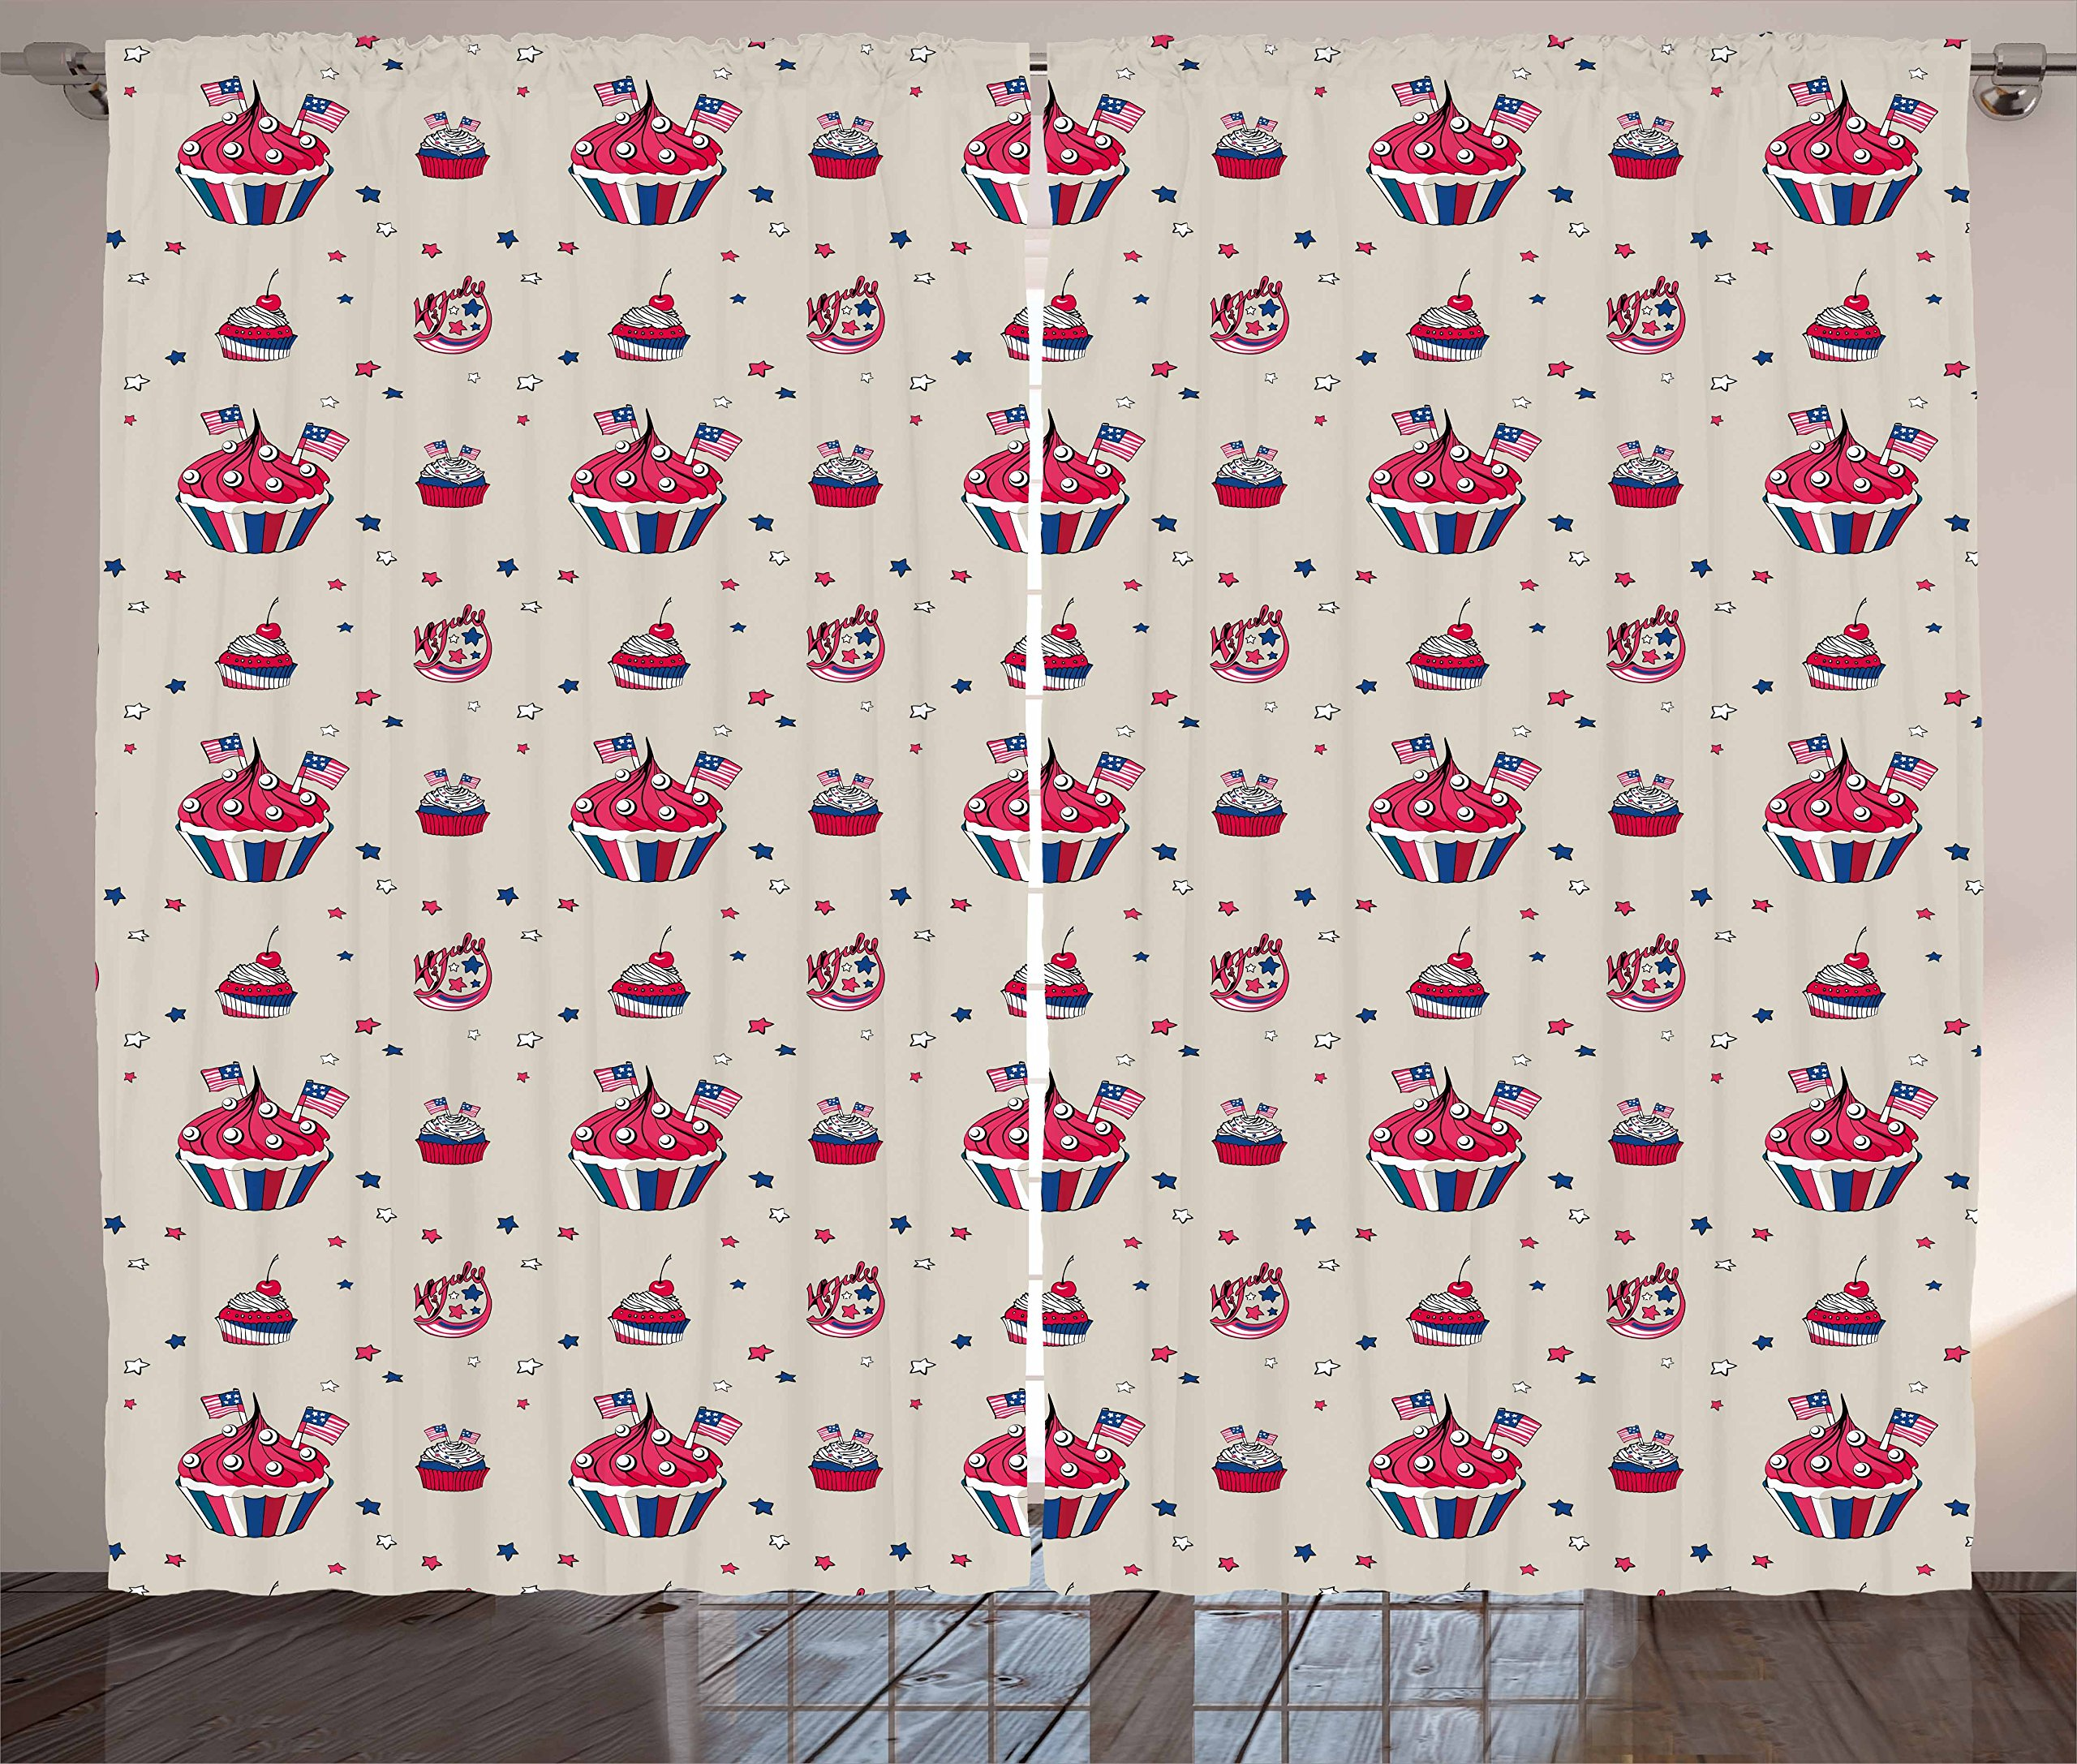 Ambesonne USA Curtains, Cupcakes with National Flags Cafe Yummy Homeland July Fourth Caricature, Living Room Bedroom Window Drapes 2 Panel Set, 108'' X 63'', Beige Navy Blue Red by Ambesonne